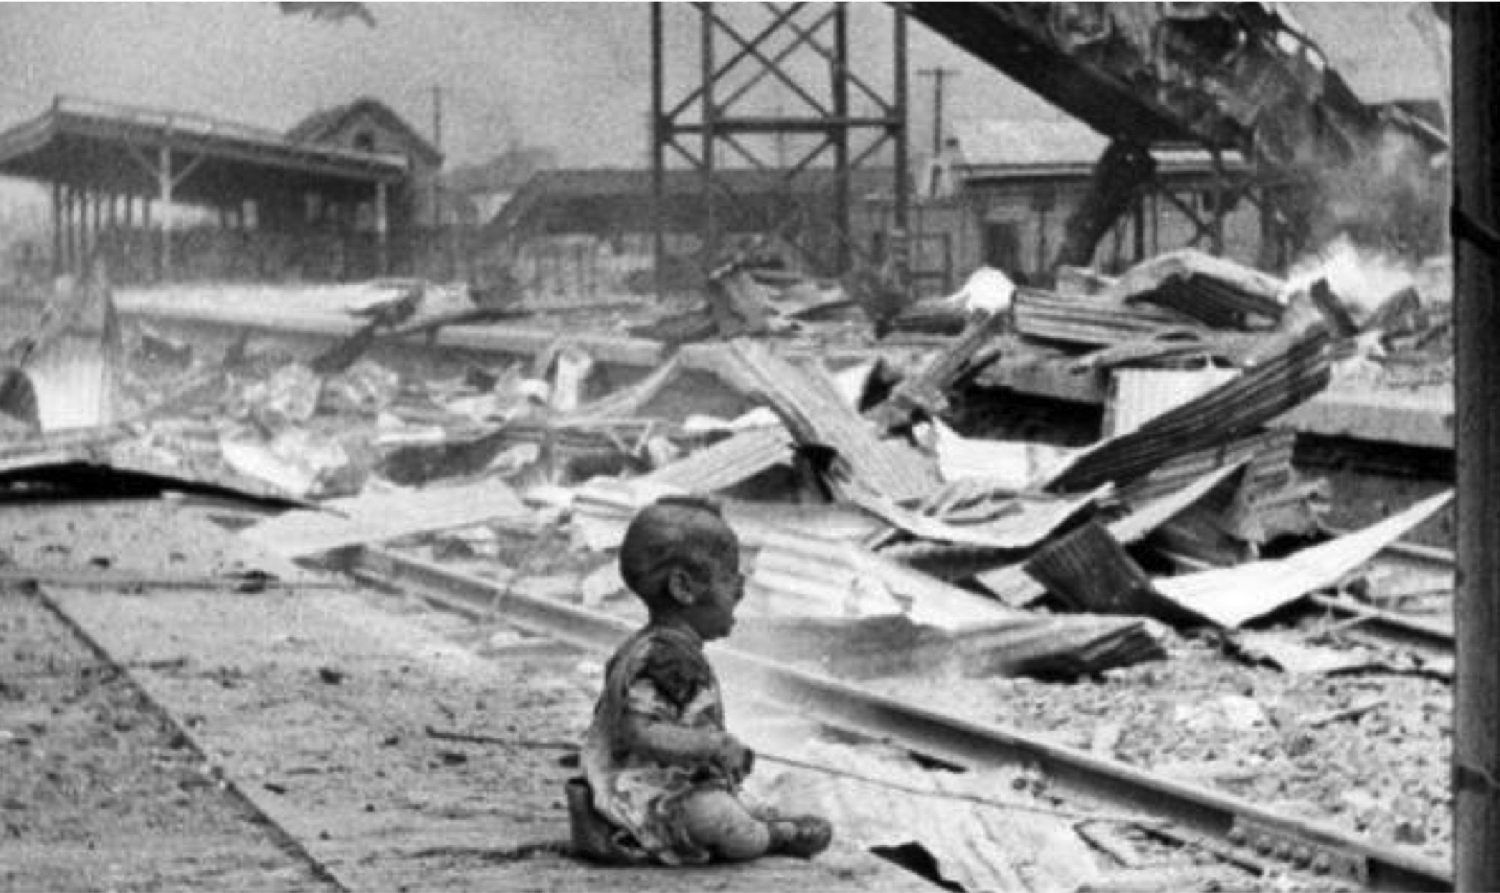 Hiroshima: the first city destroyed by a nuclear weapon